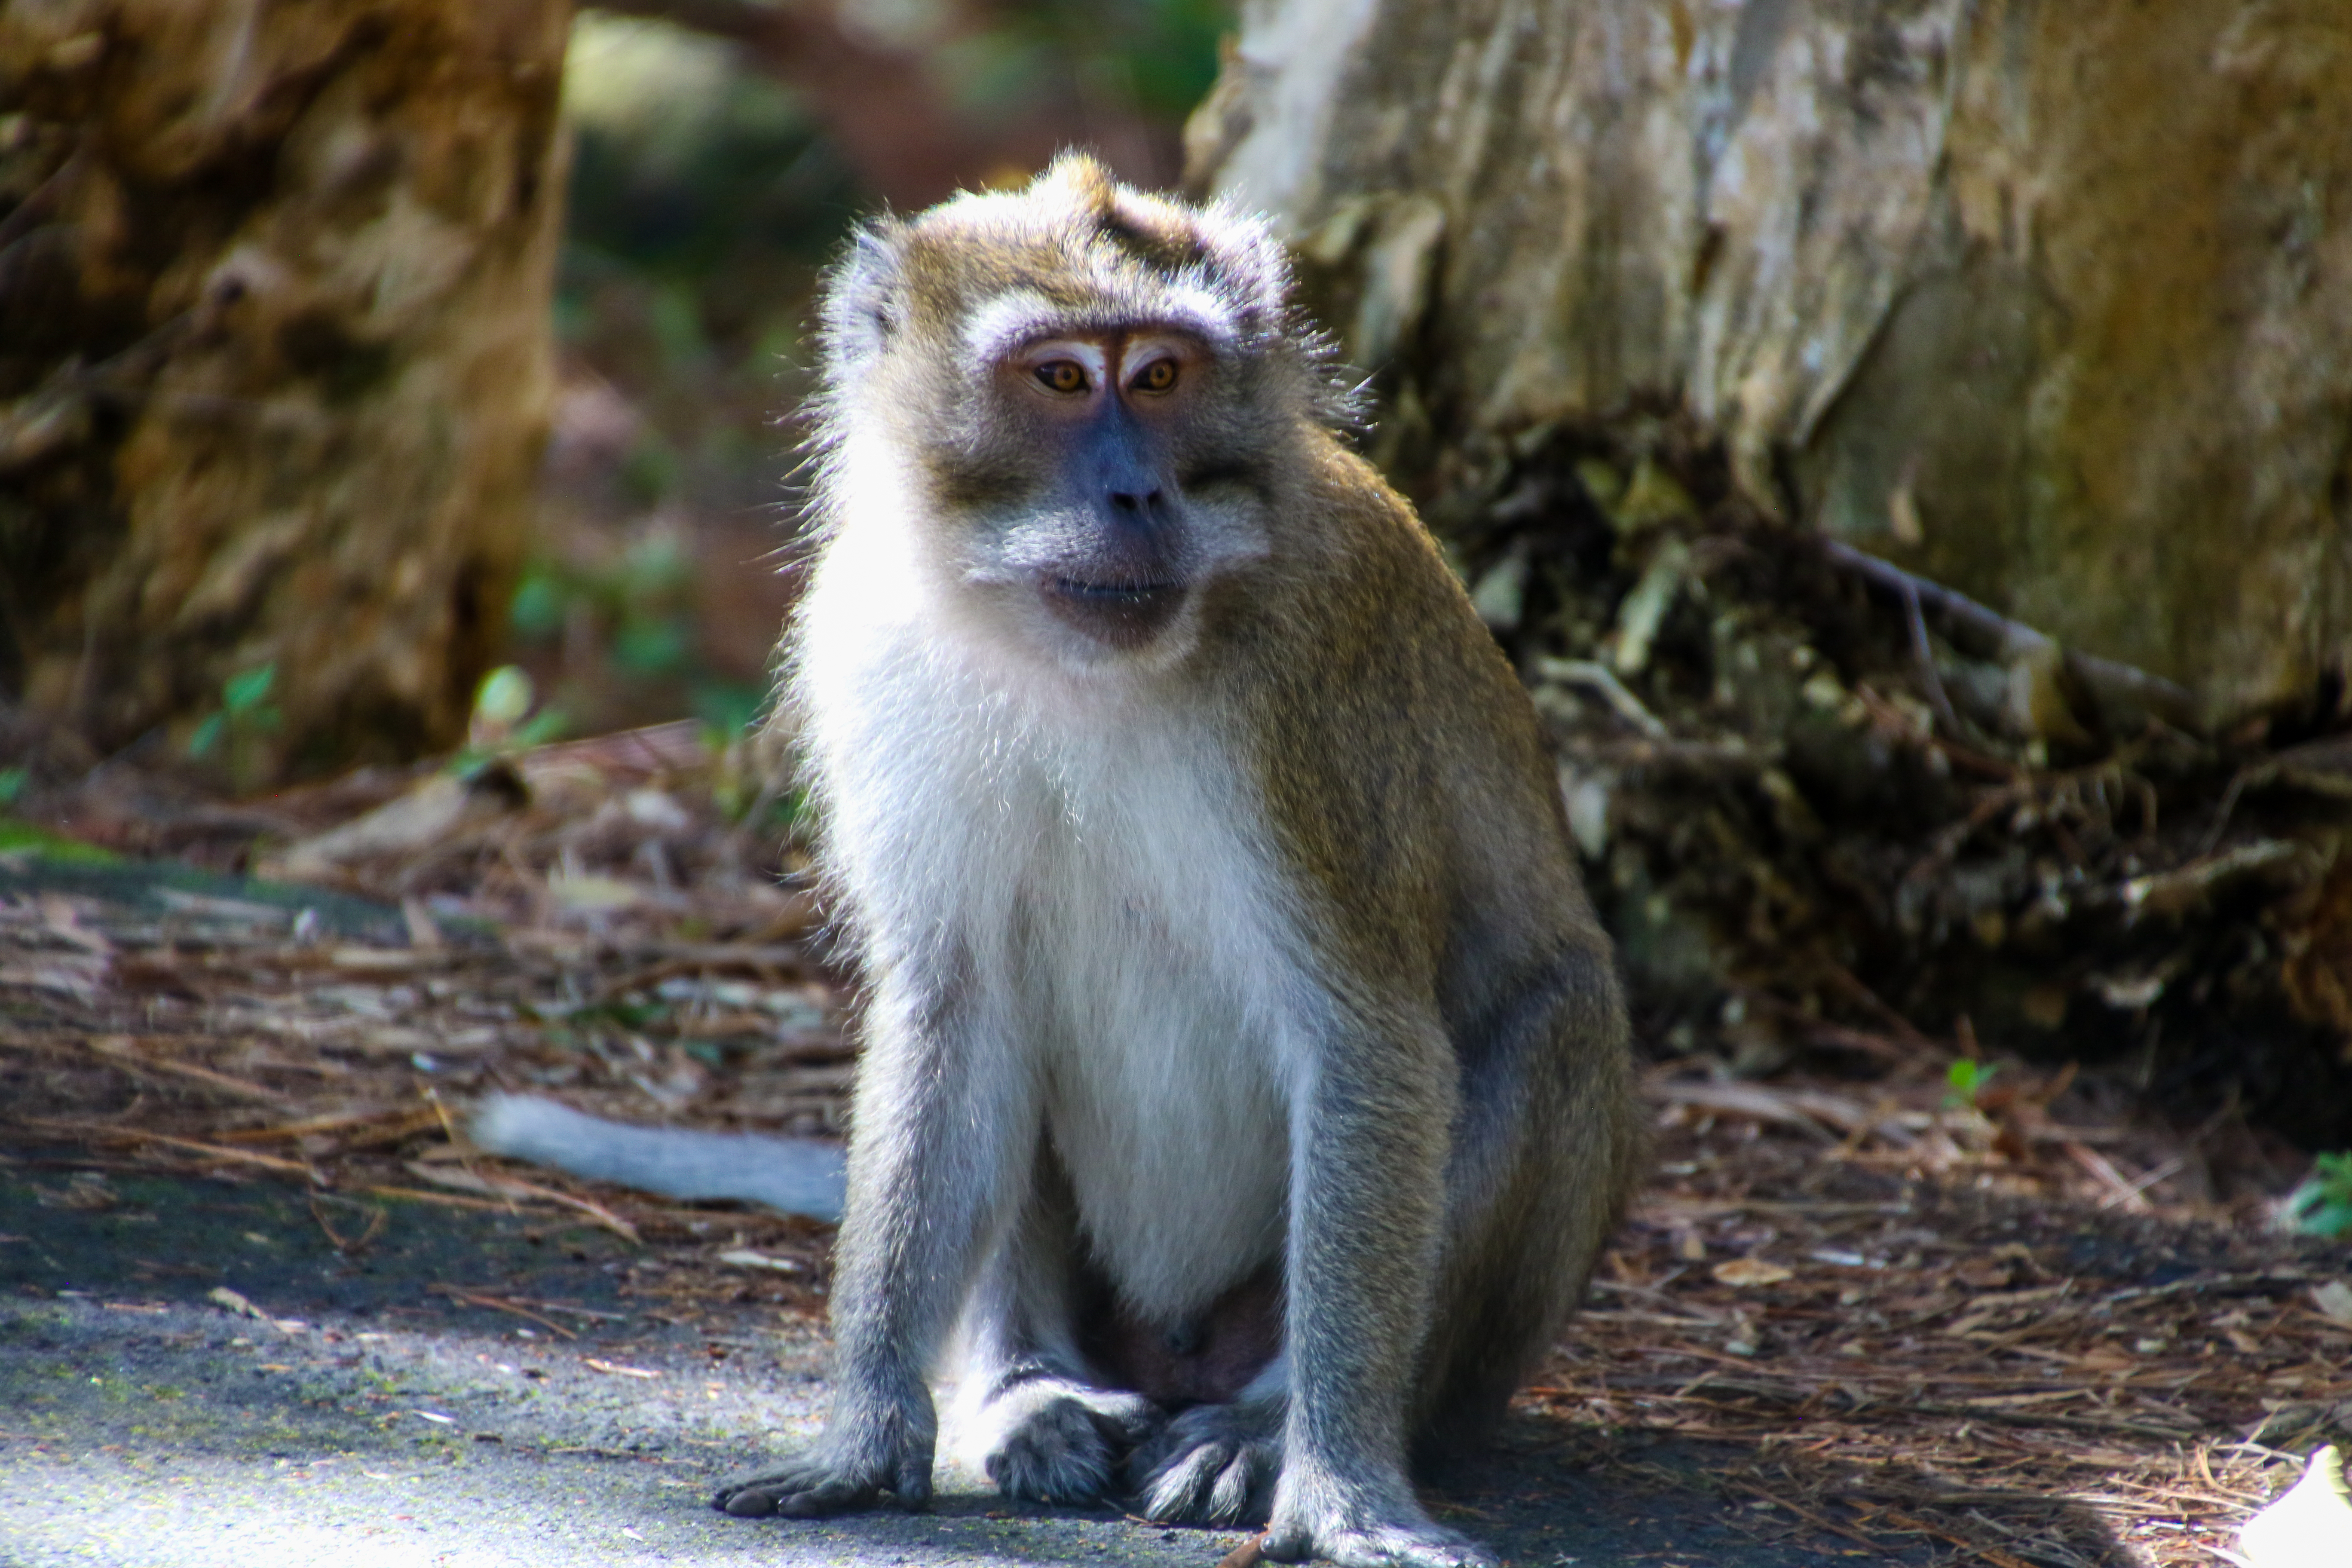 Brown and White Monkey